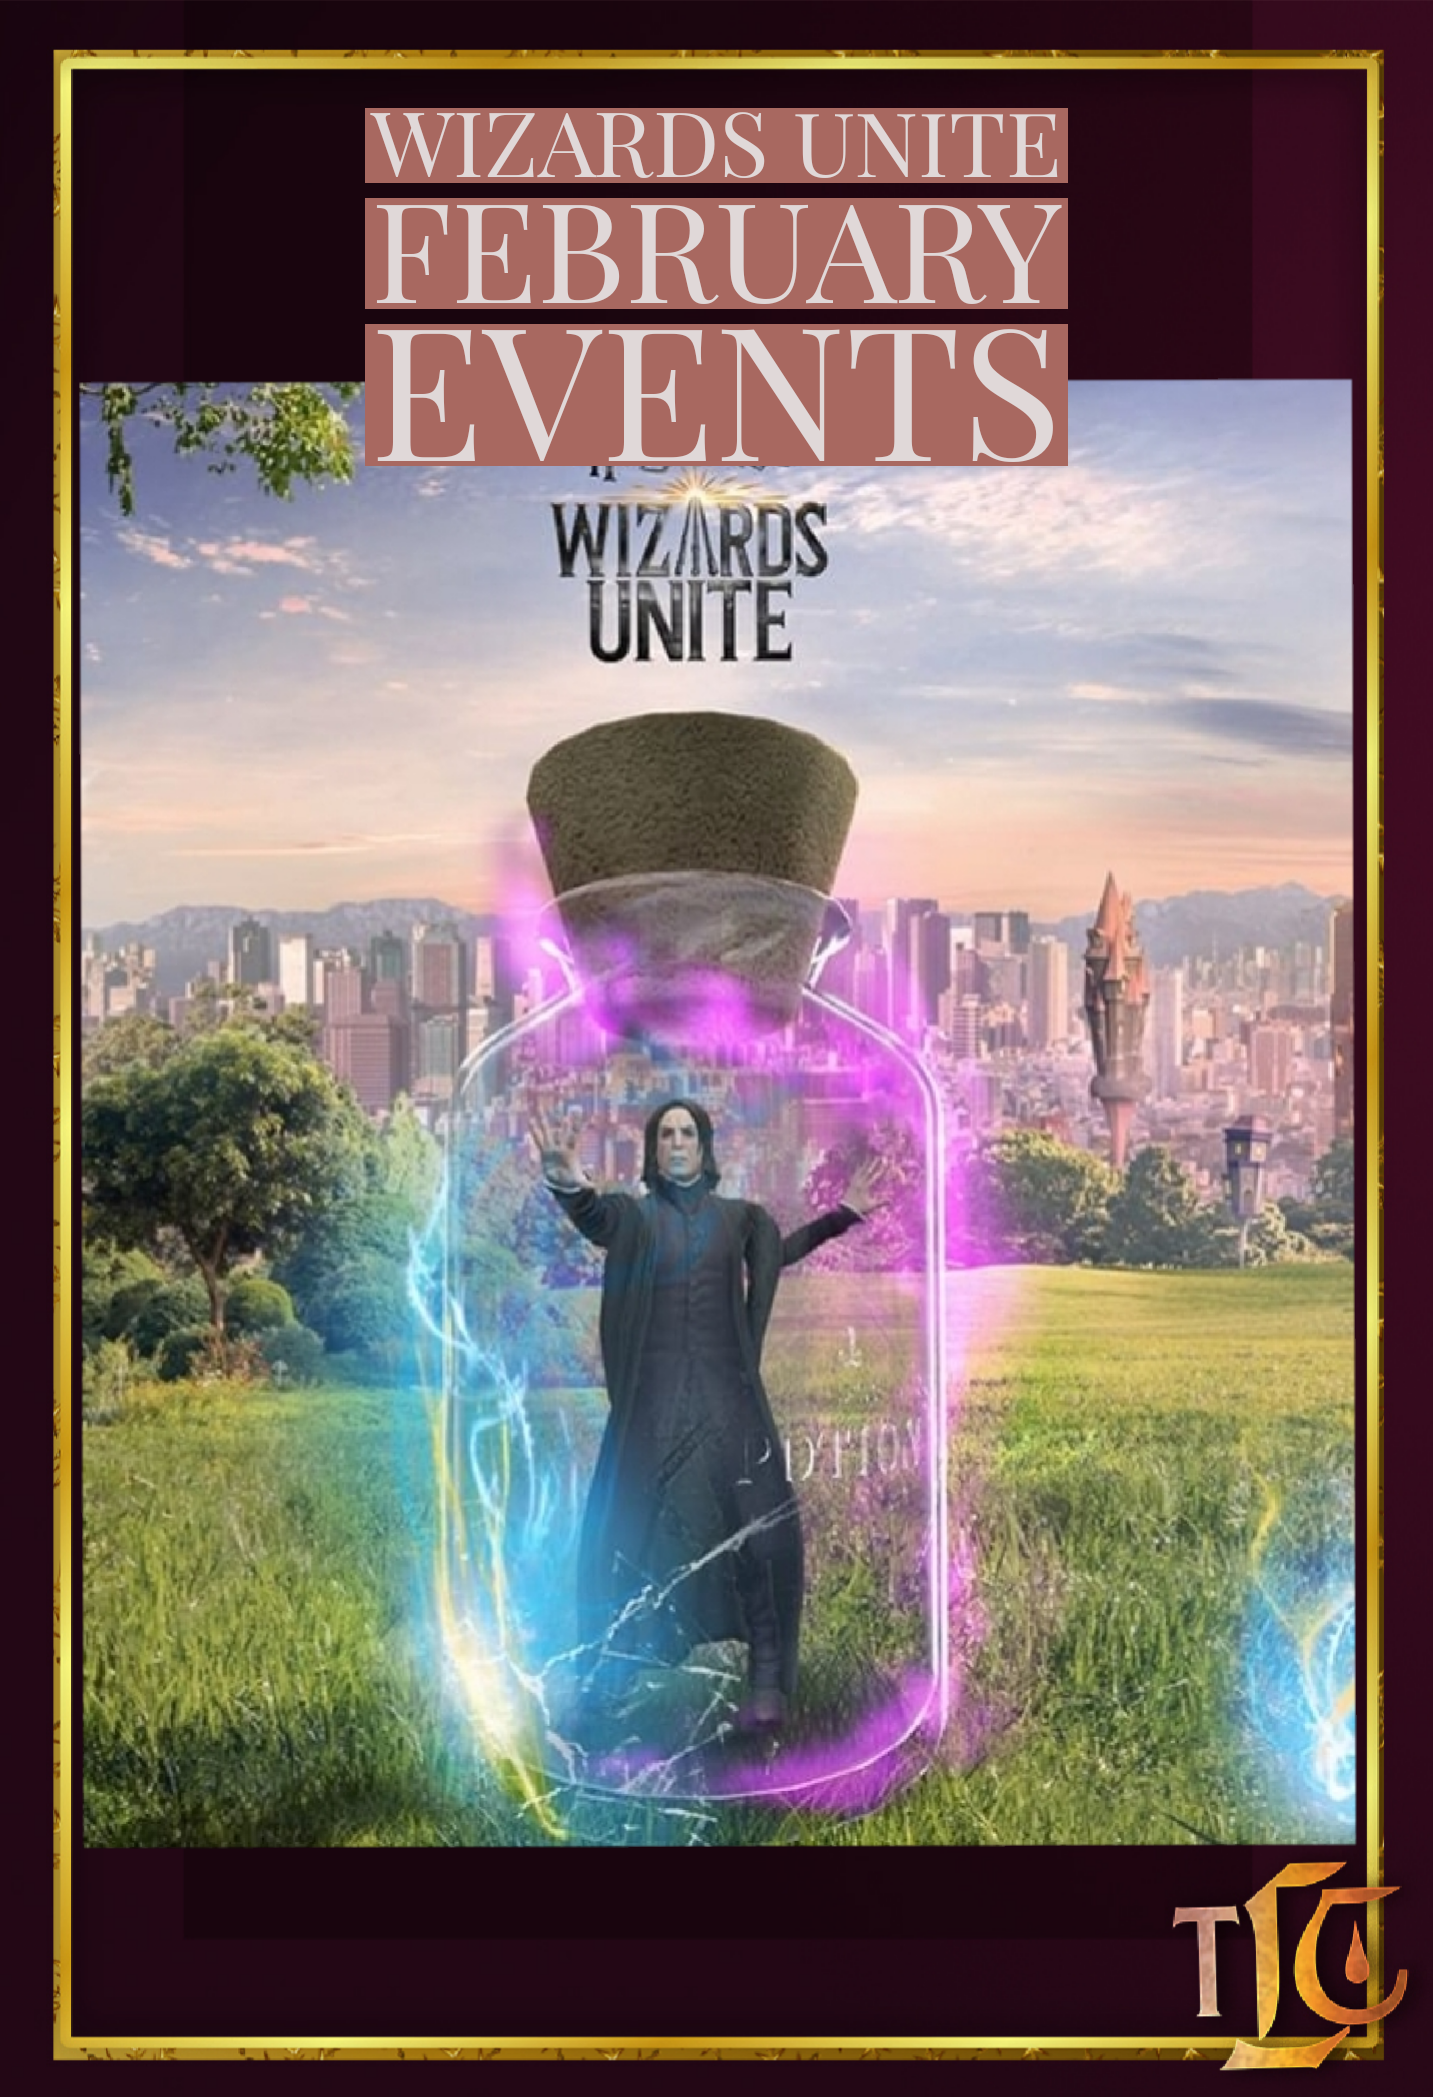 Wizards Unite Is Lovestruck This February In 2020 Harry Potter Harry Potter Wizard February